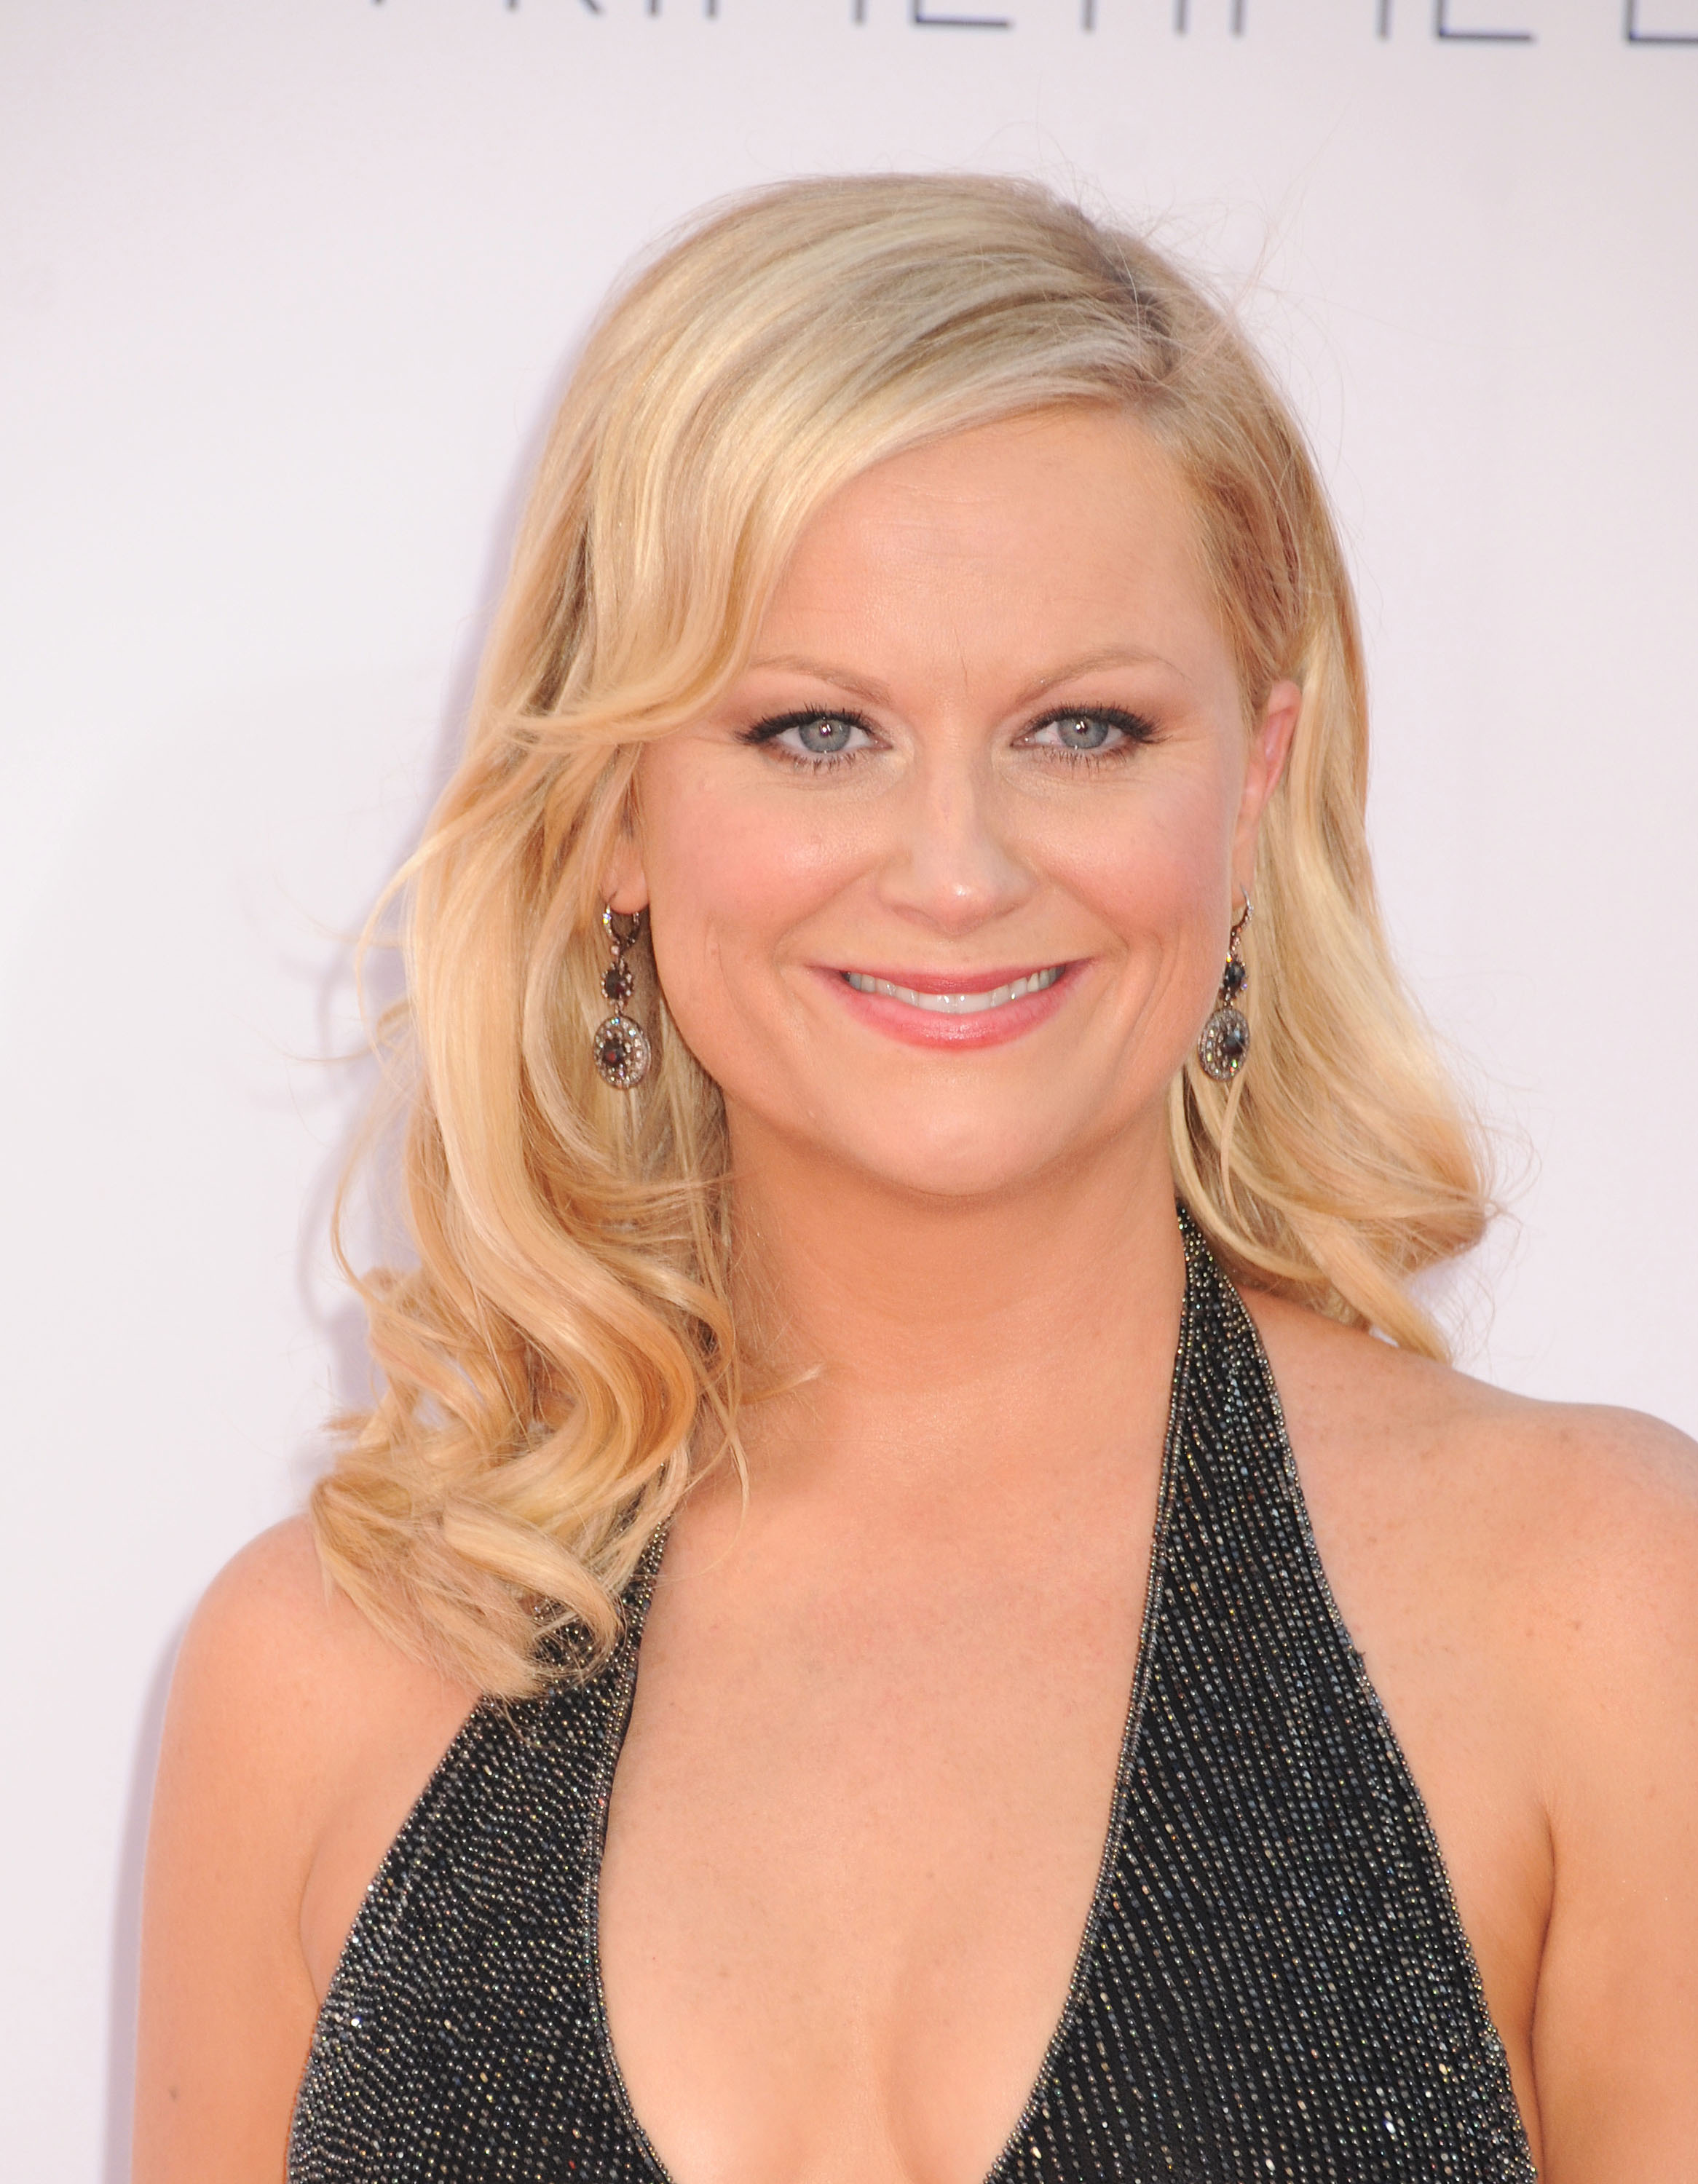 The 46-year old daughter of father William Grinstead Poehler and mother Eileen Frances Milmore, 157 cm tall Amy Poehler in 2018 photo